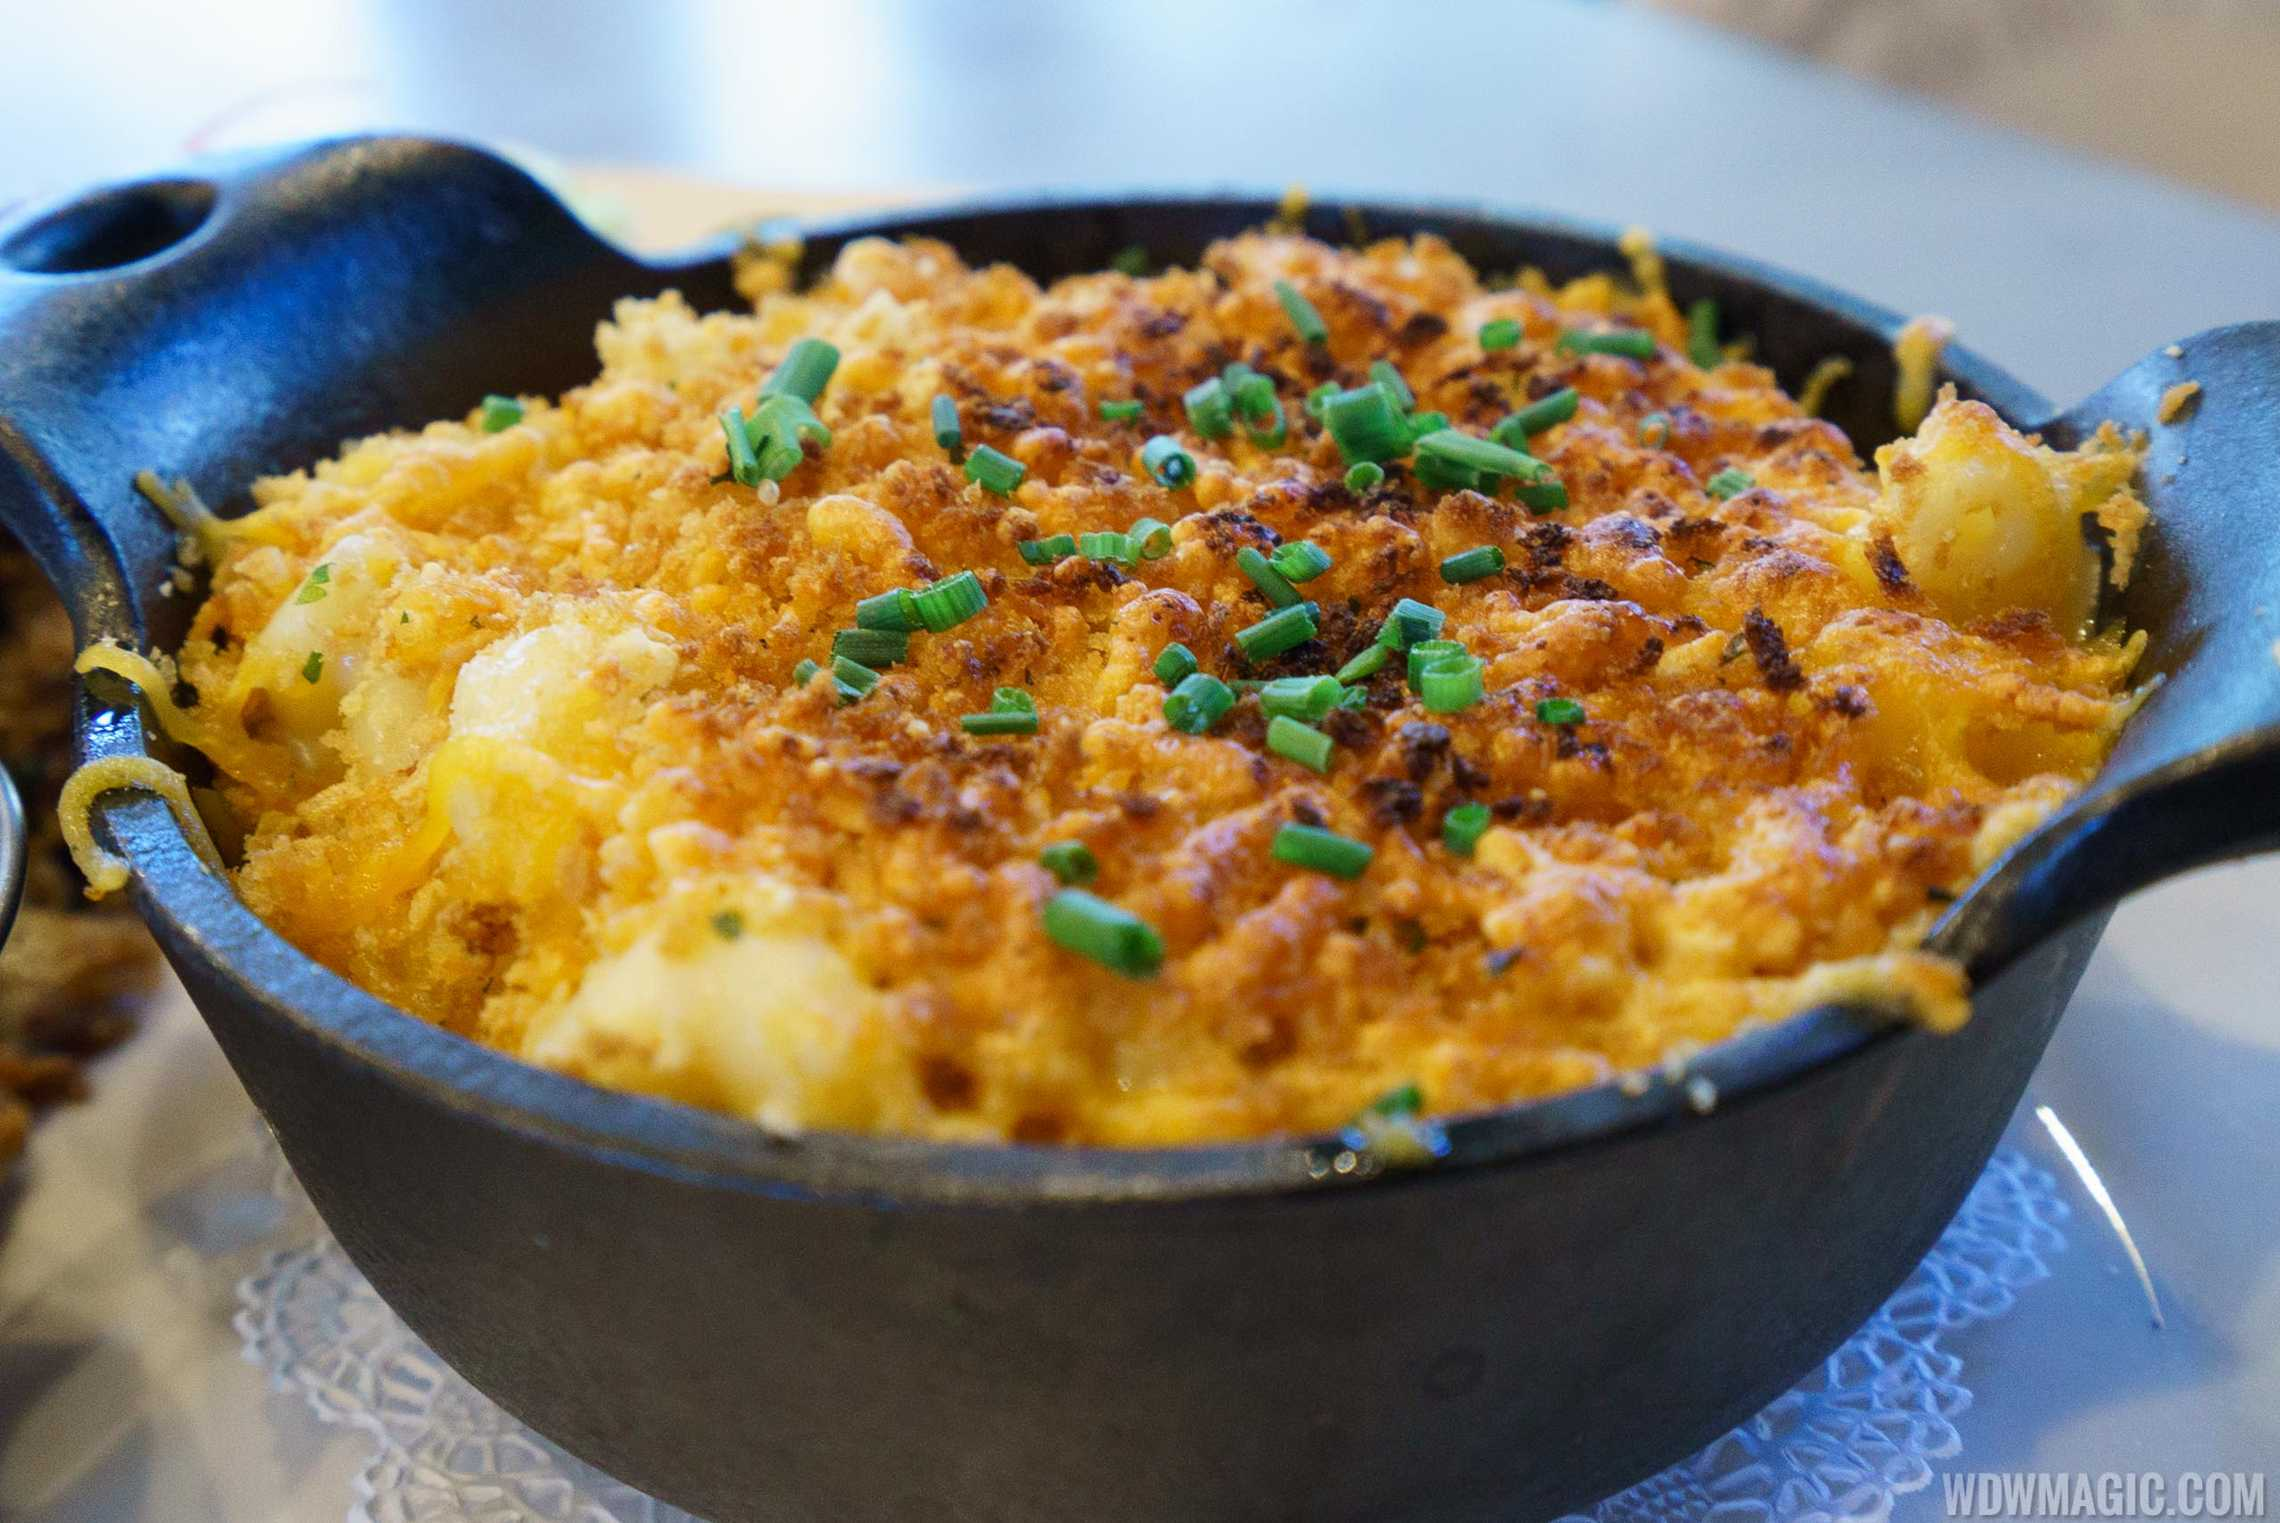 Homecoming restaurant - Momma's Mac and Cheese